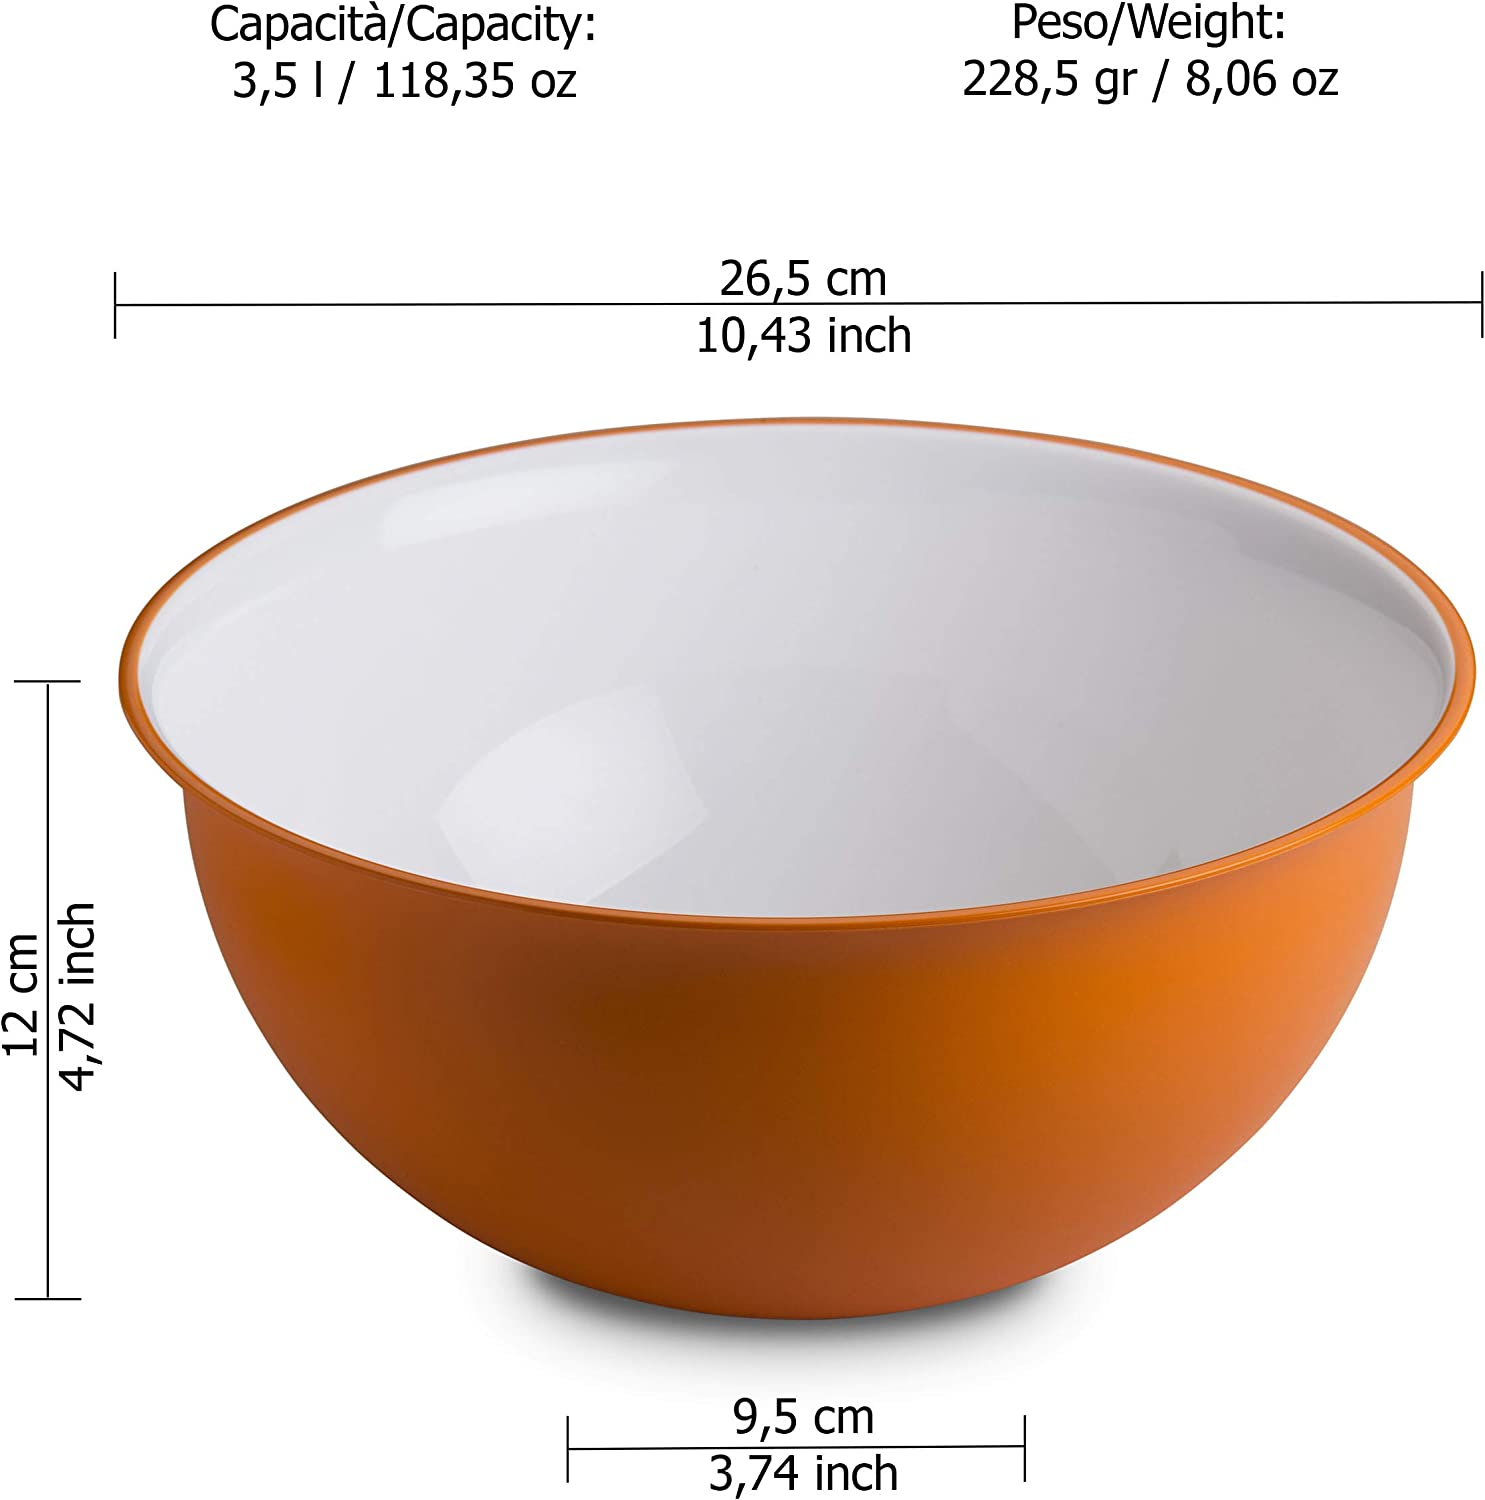 Sanaliving Line in Polypropylene and Antibacterial microban Diameter 12,60 inch White Inside and Colored Outside Omada Design Bowl of 228,77 fl oz